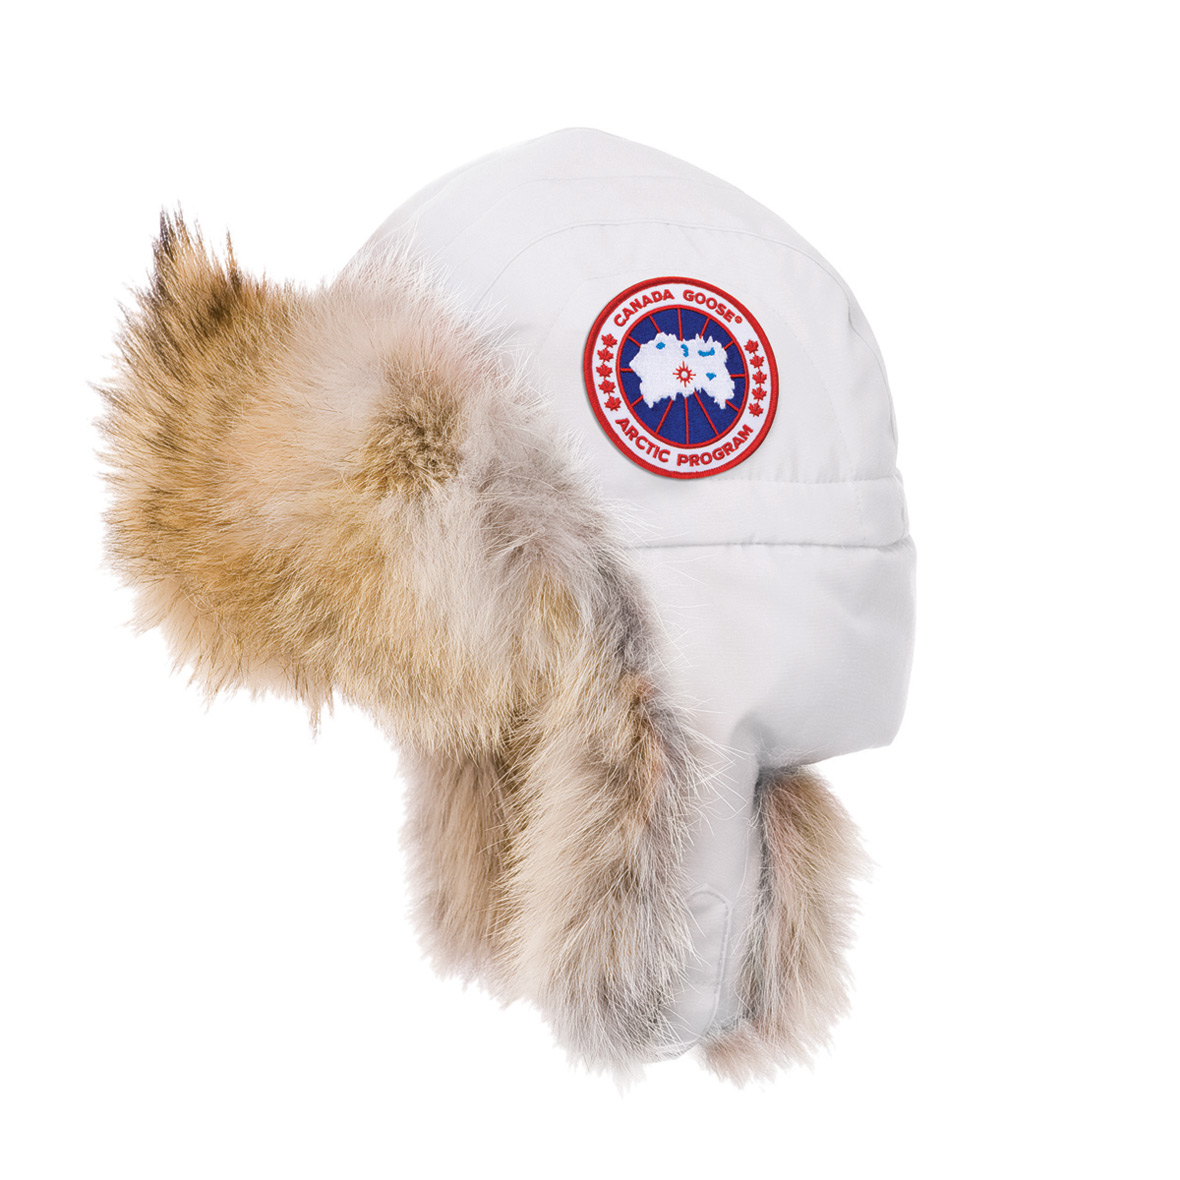 Canada Goose Unisex Aviator Hat WHITE For Men